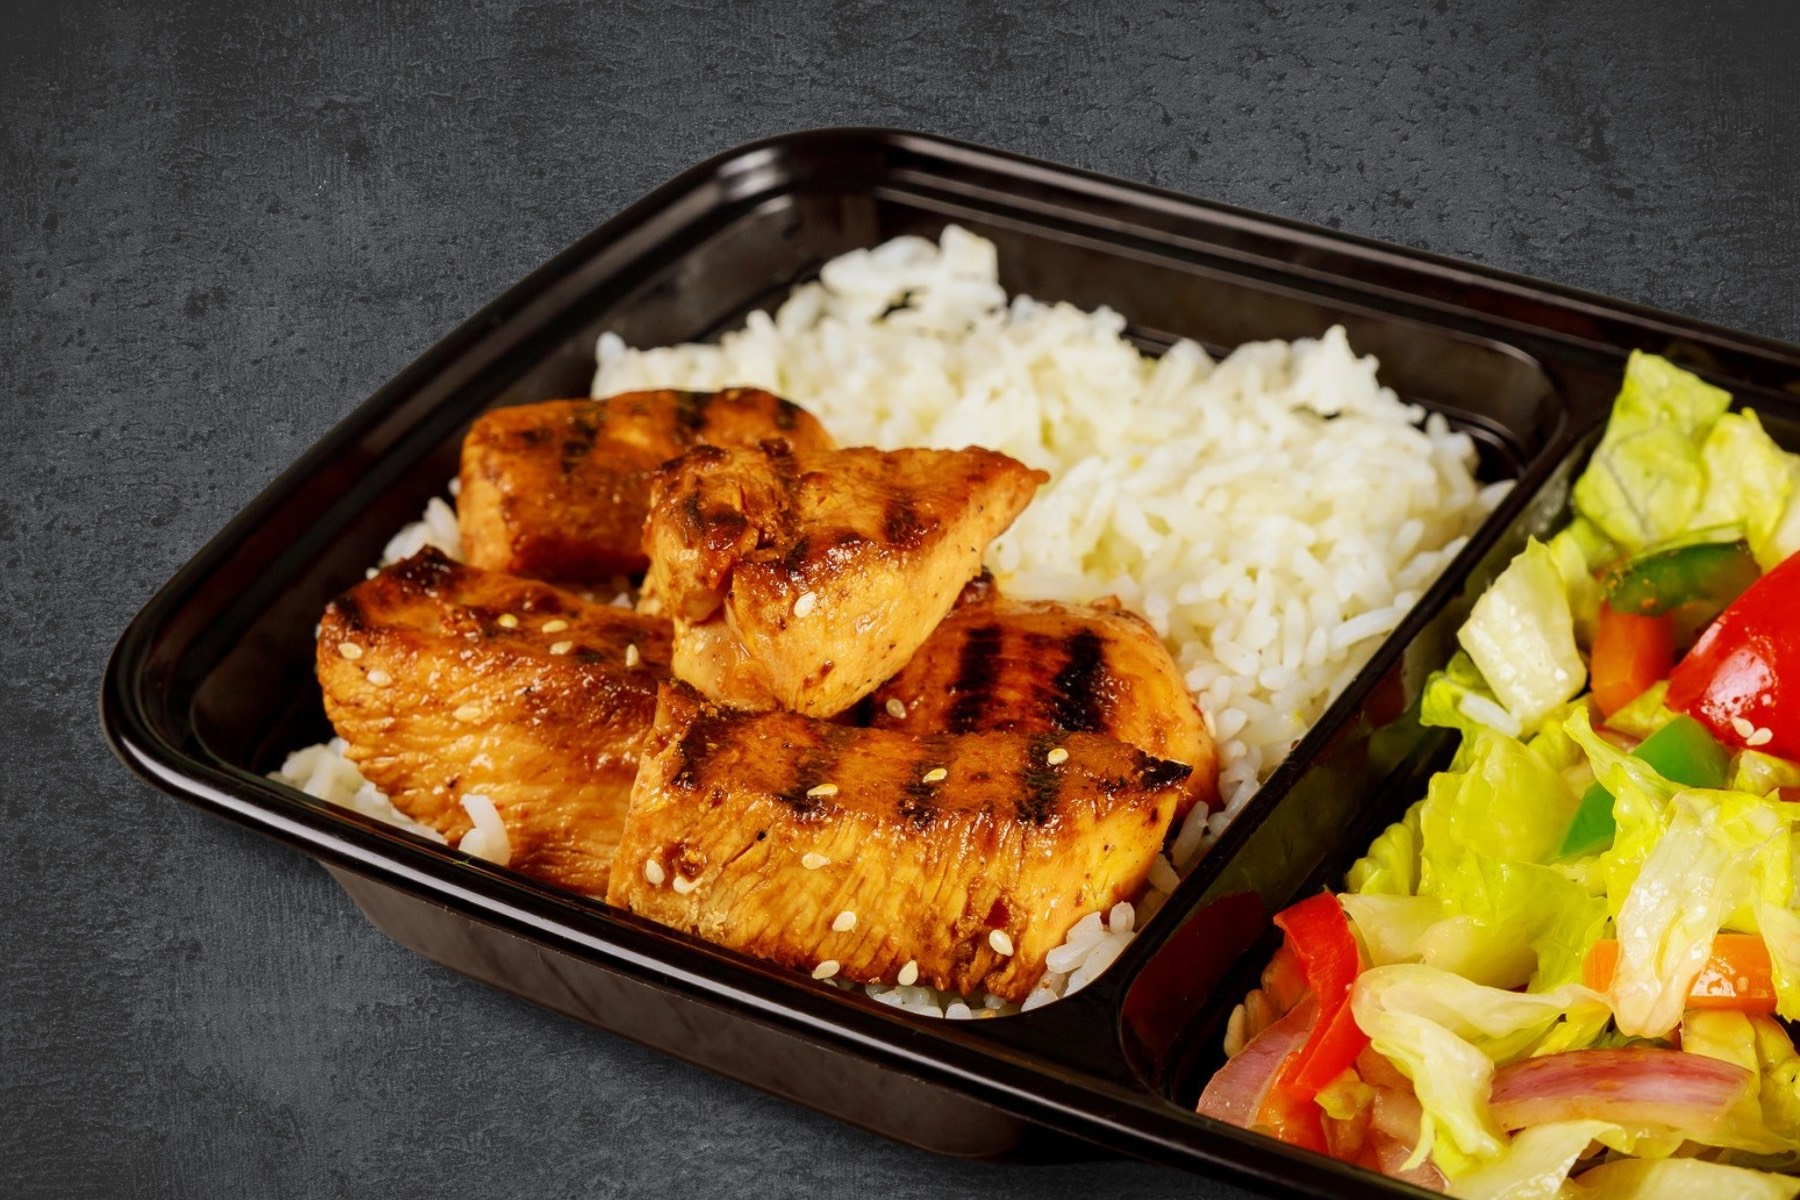 image of an individual size takeout container with grilled chicken on top of a bed of white rice and a side of tossed salad